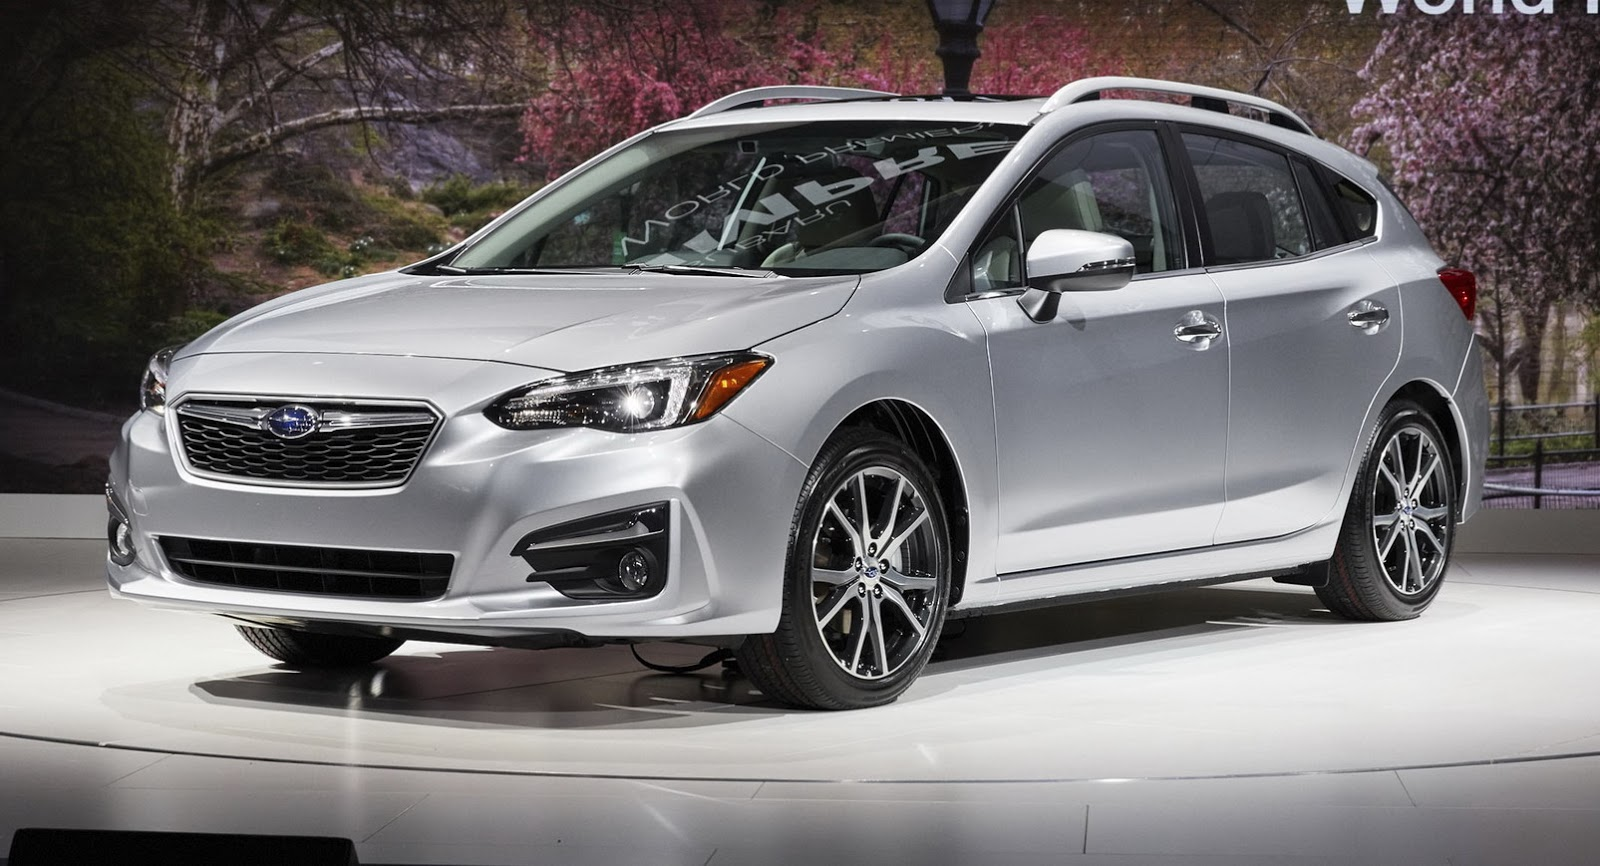 2017 Subaru Impreza Hatch Vs Concept